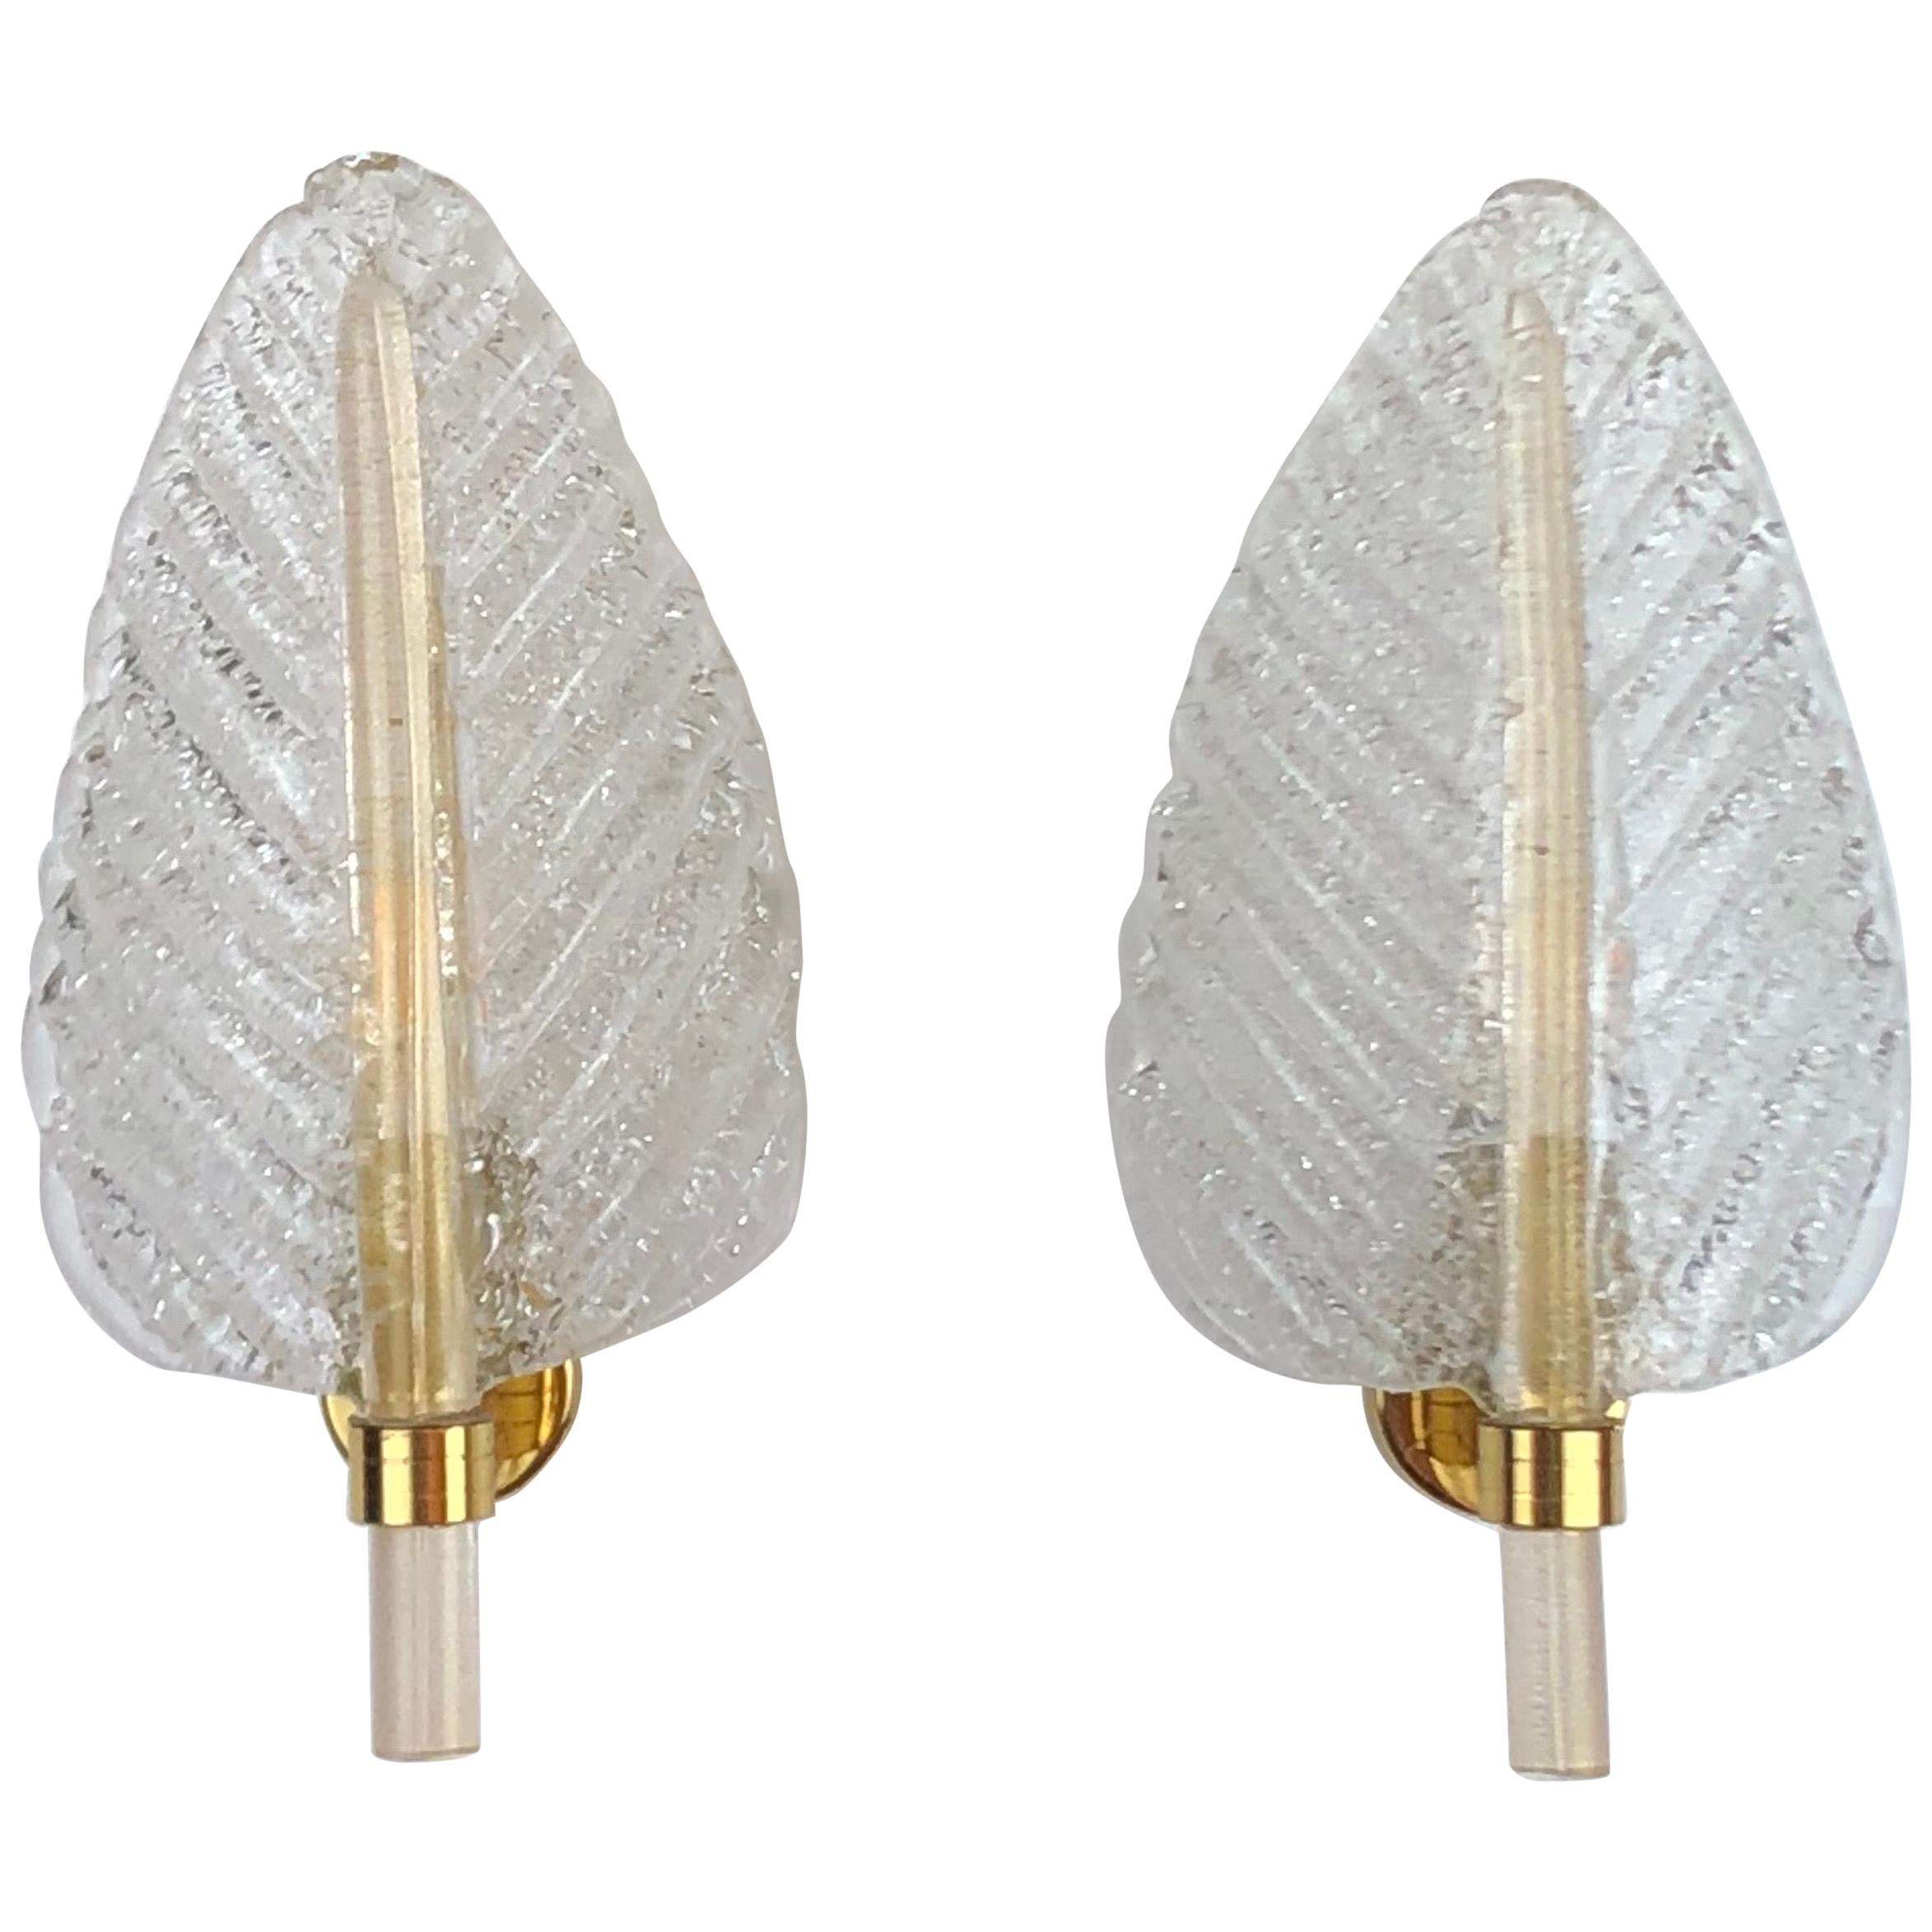 Pair of Barovier e Toso Leaf Murano Glass Wall Sconces, circa 1960s